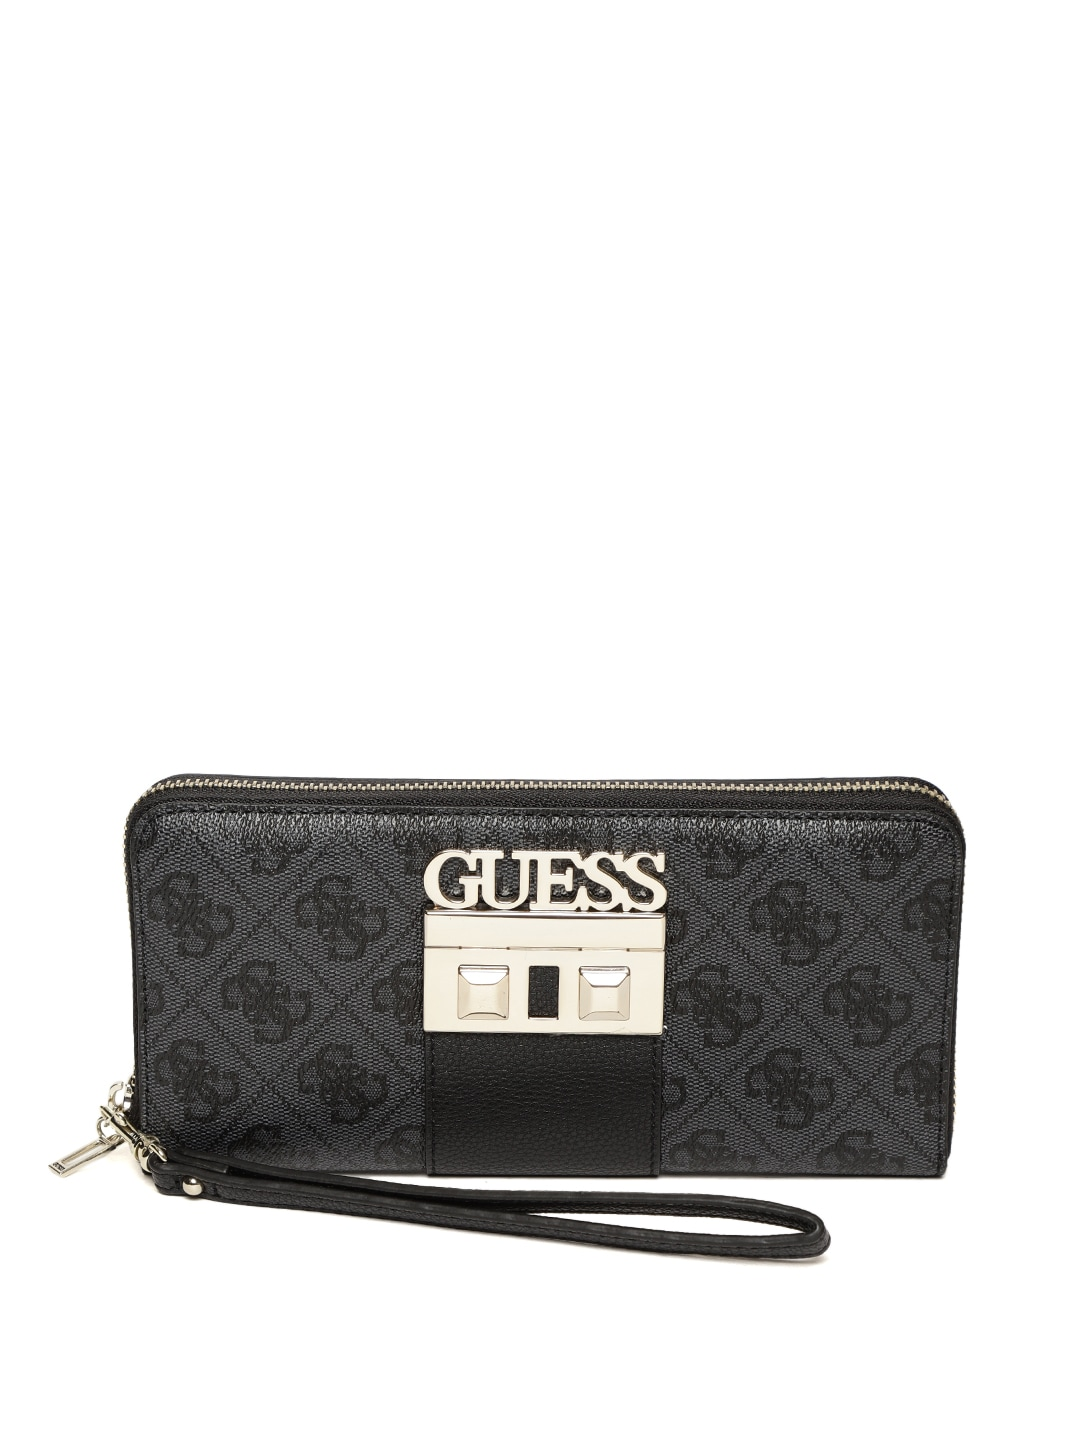 593b1a7010 Guess - Shop Online for Guess Products   Best Price